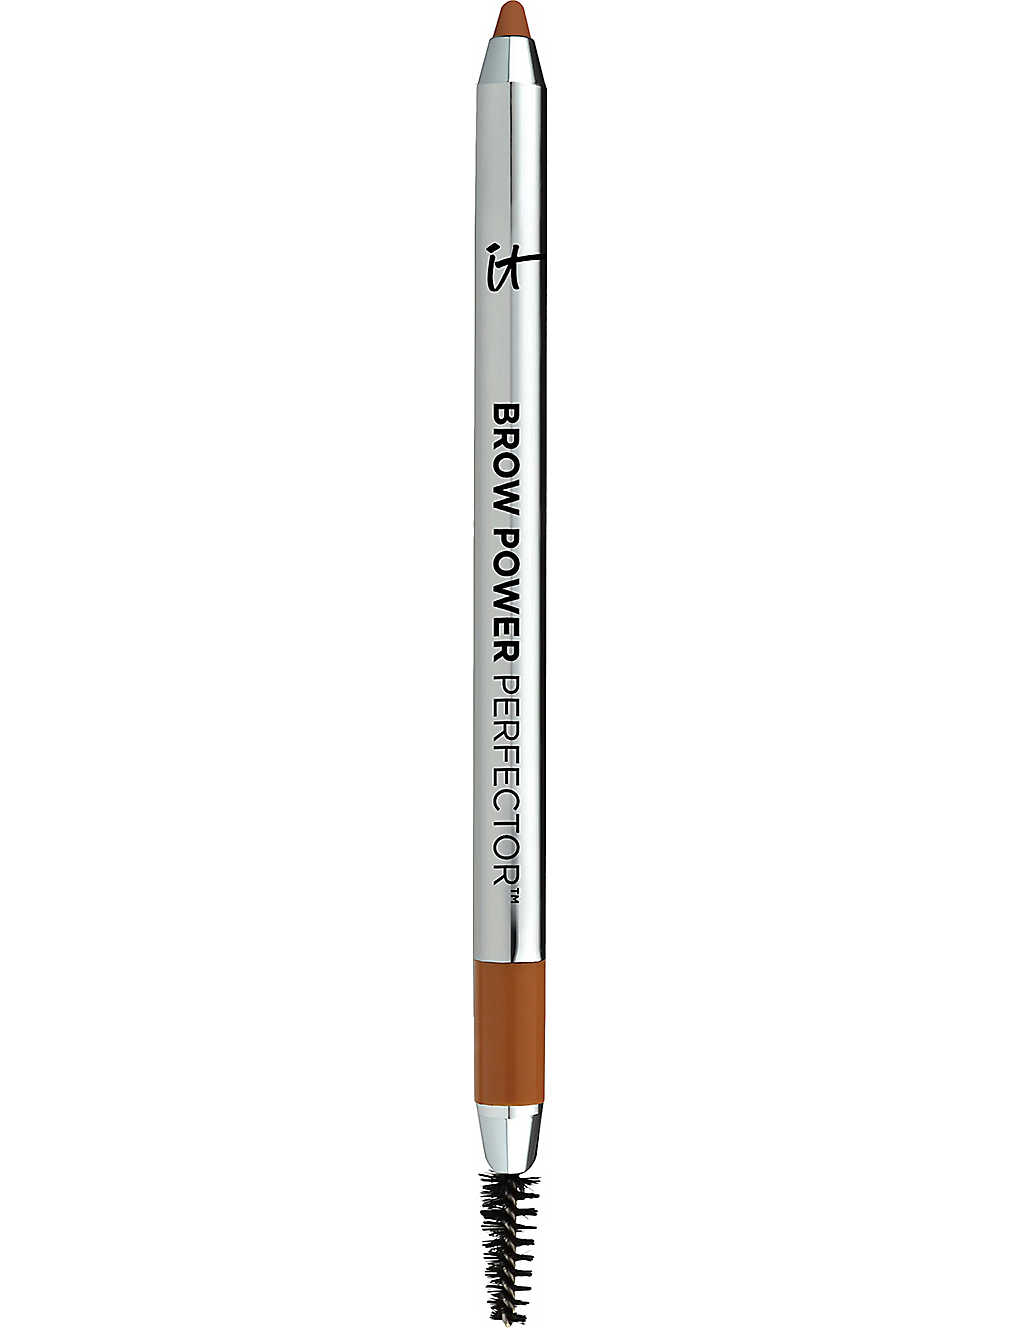 IT COSMETICS: Brow Power Waterproof Perfector